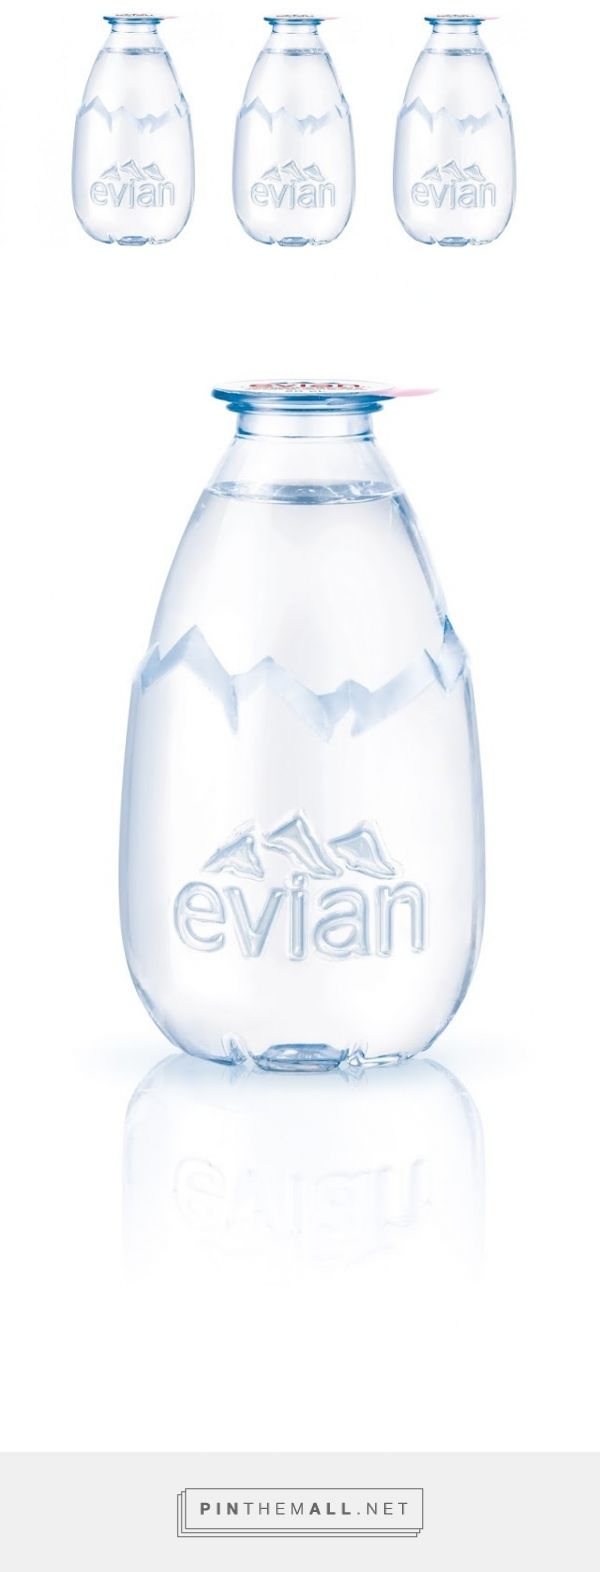 La Goutte d'evian evian packaging designed by Grand Angle Design​ - http://www.packagingoftheworld.com/2015/08/la-goutte-devian.html